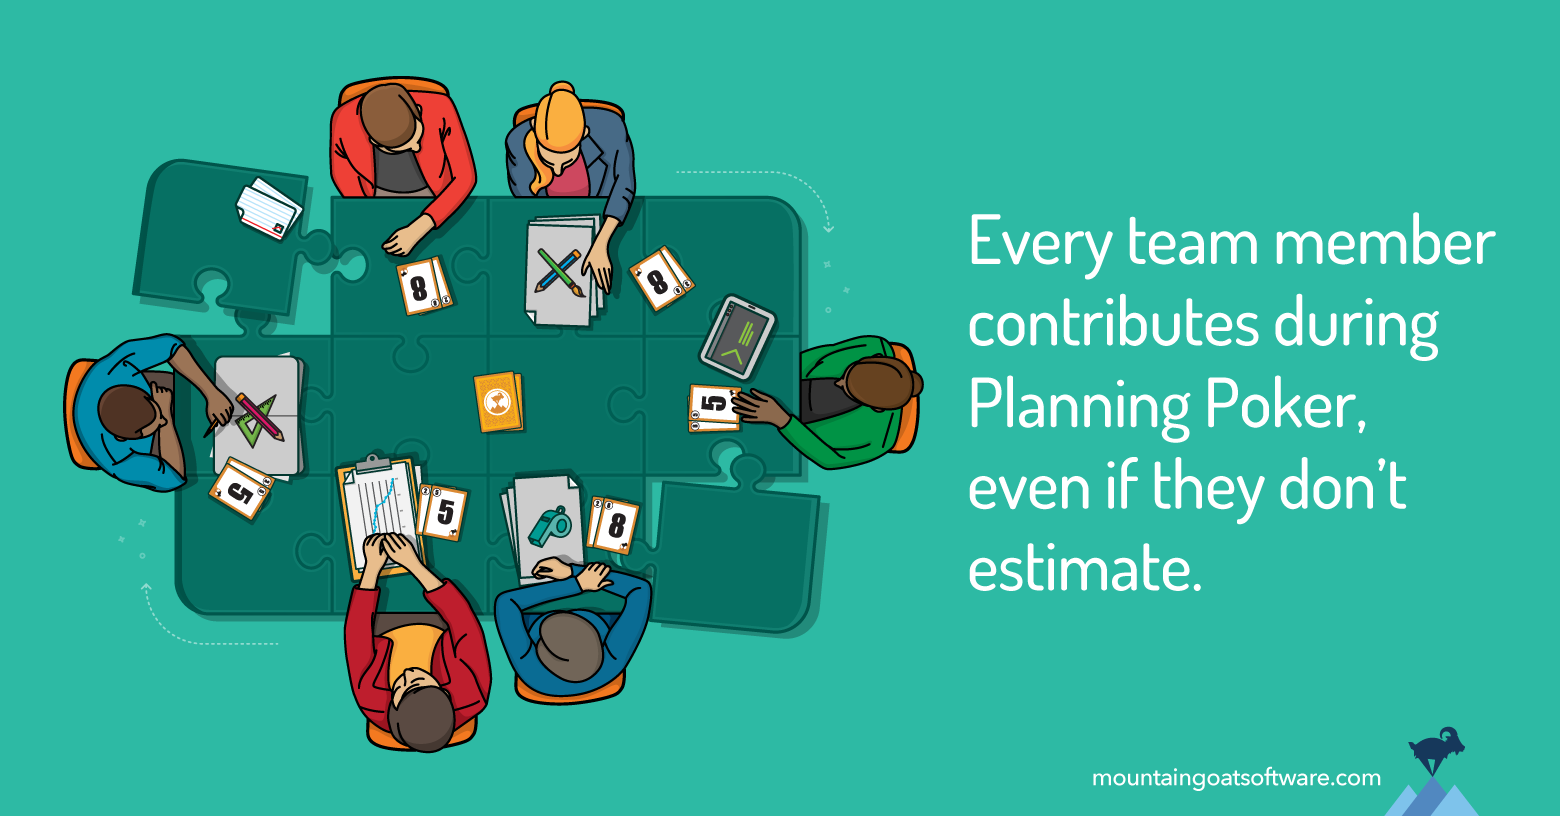 Why the Whole Team Should Participate When Estimating